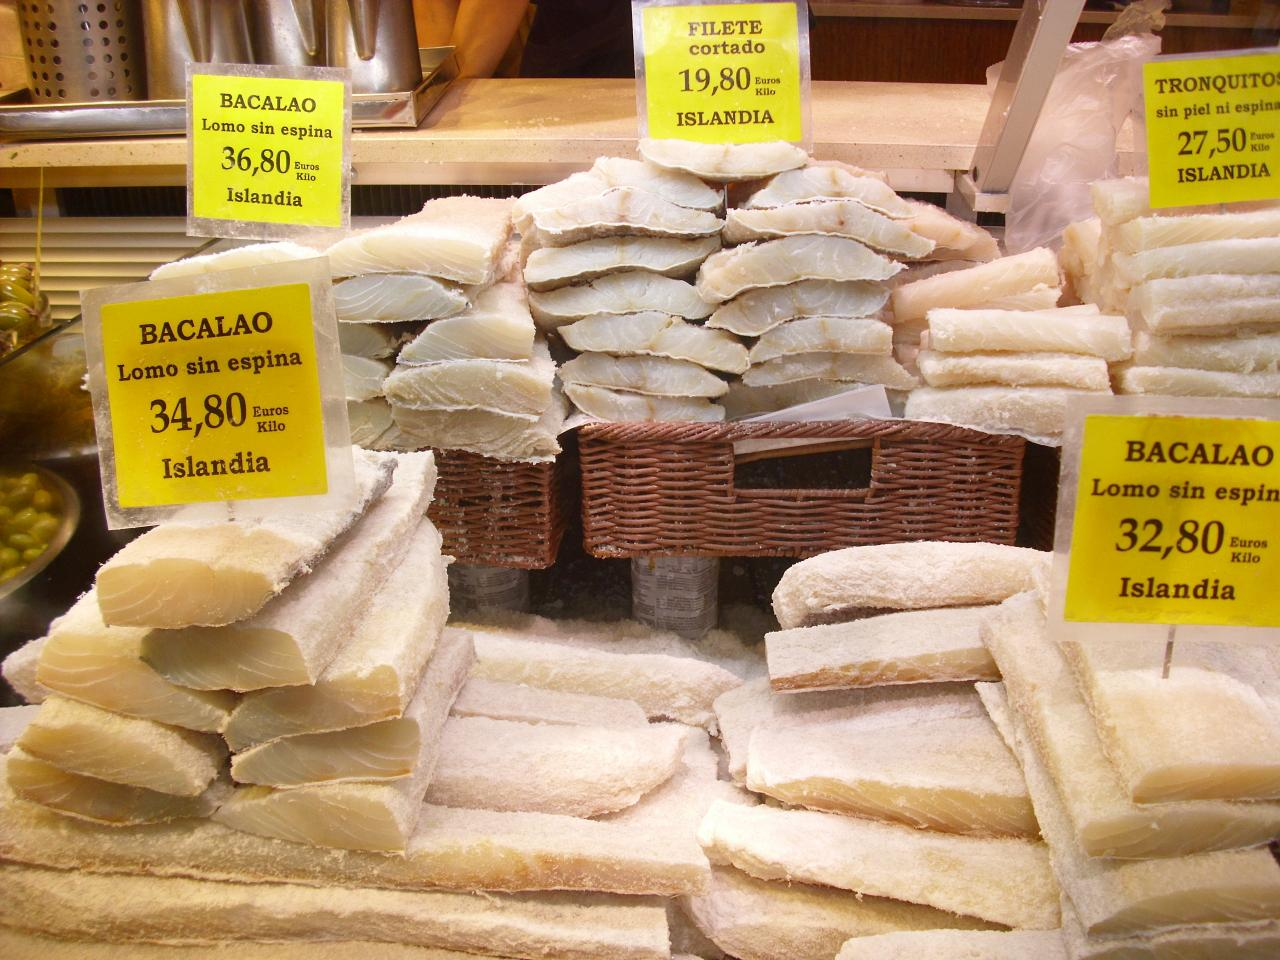 Some of the different sections of Icelandic bacalao on sale at the Aceitunera Balear stall at the Mercat d'Olivar